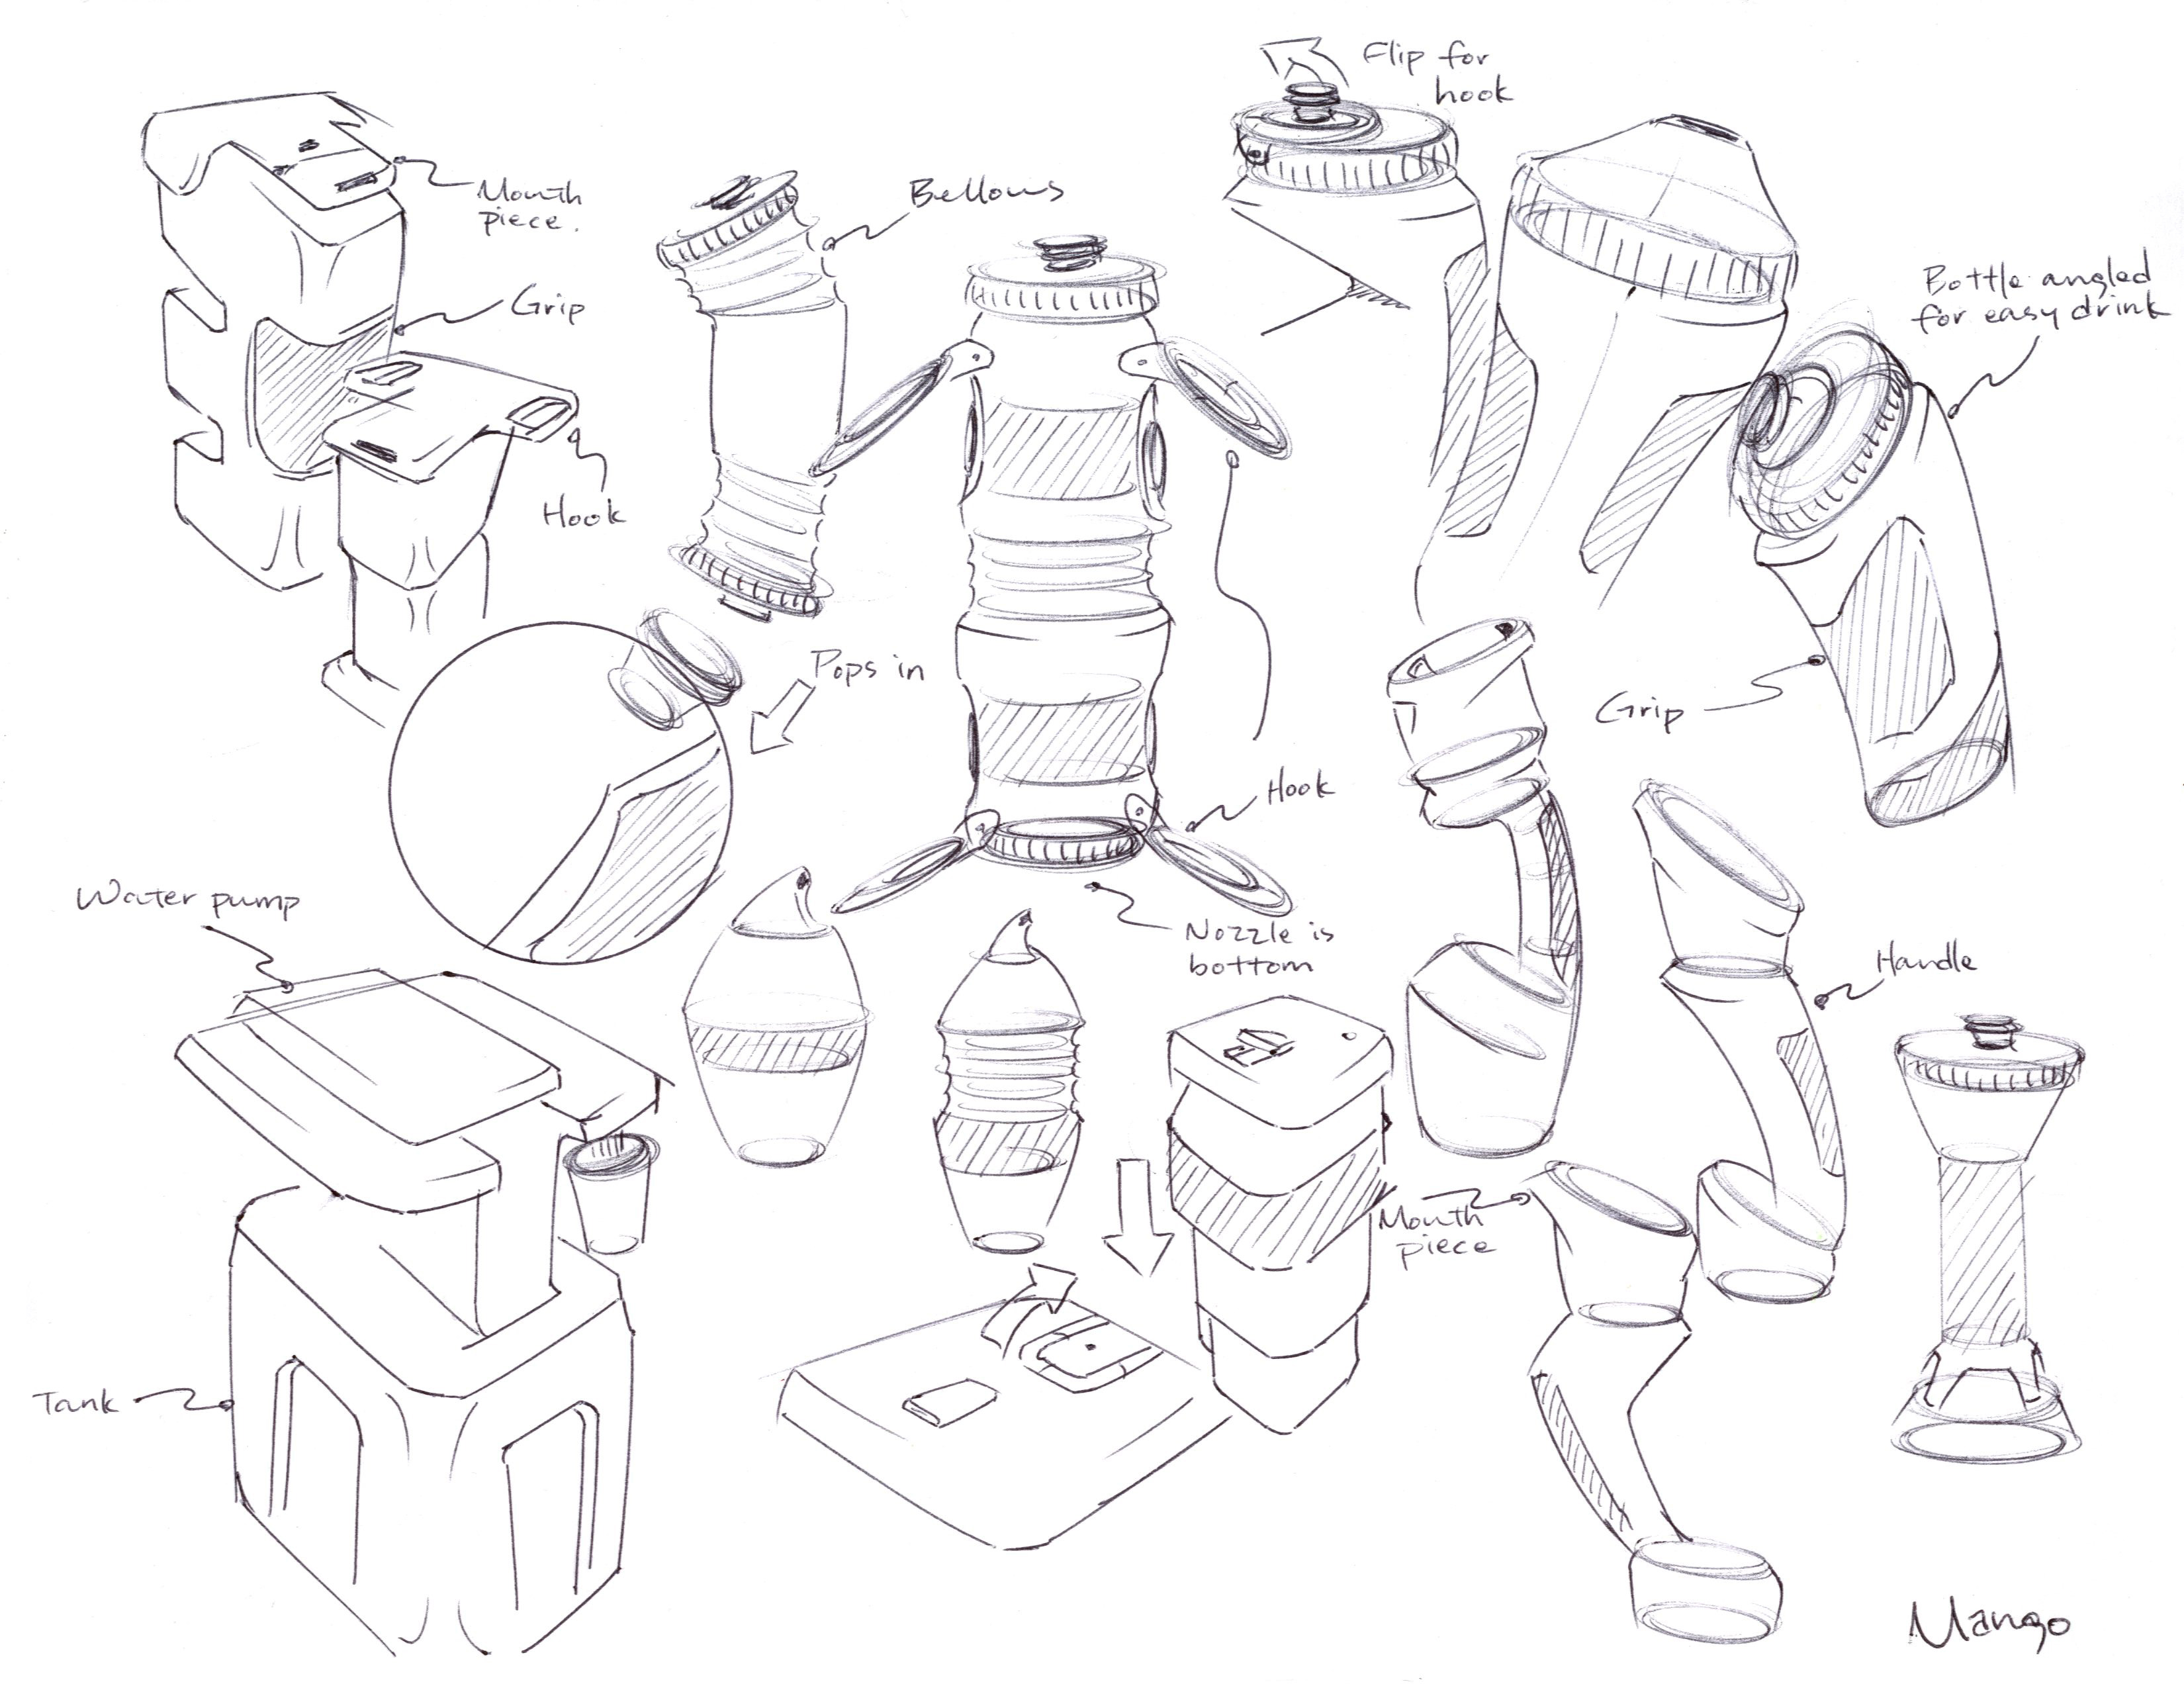 Product Design Line Art : Water bottle ideation sketches by c maeng on deviantart